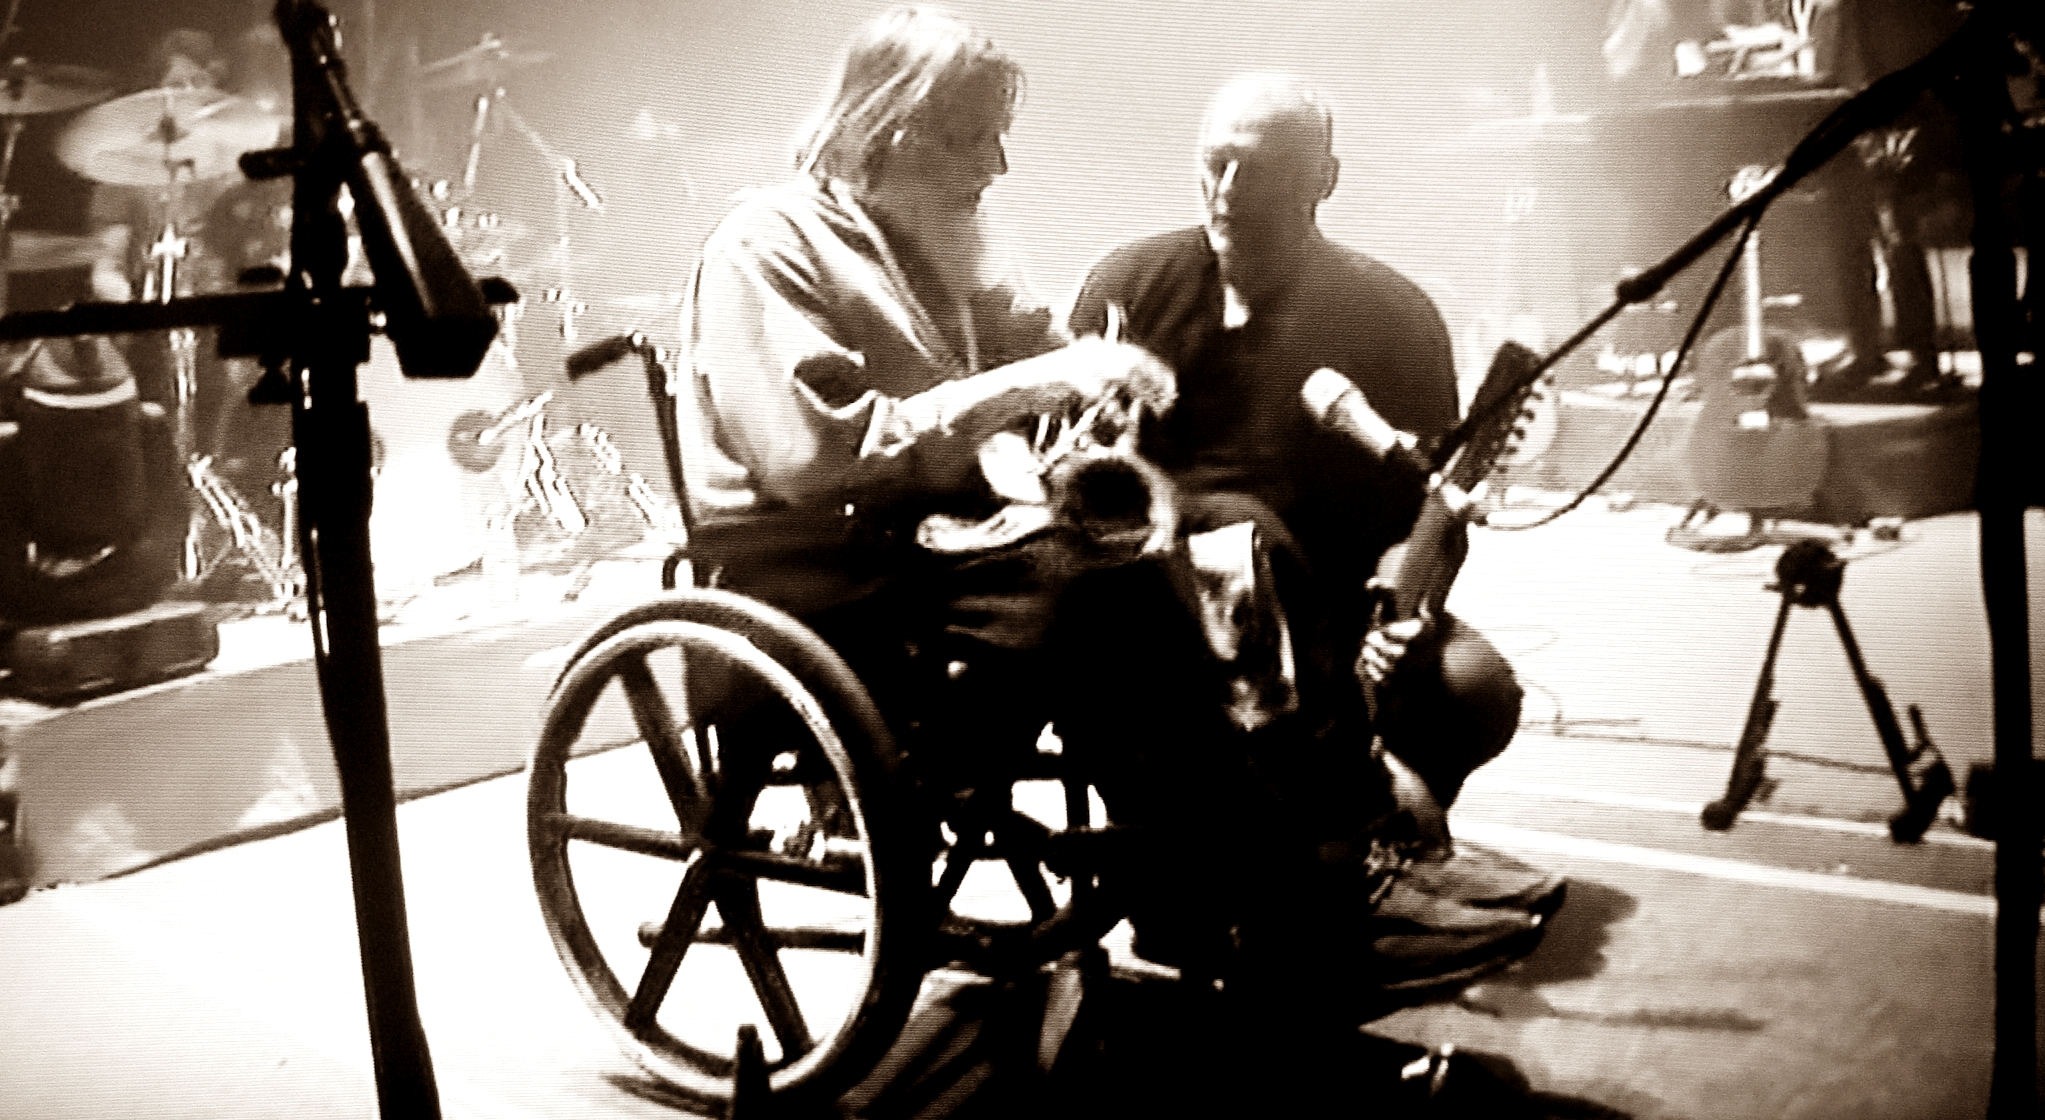 Robert Wyatt - David Gilmour